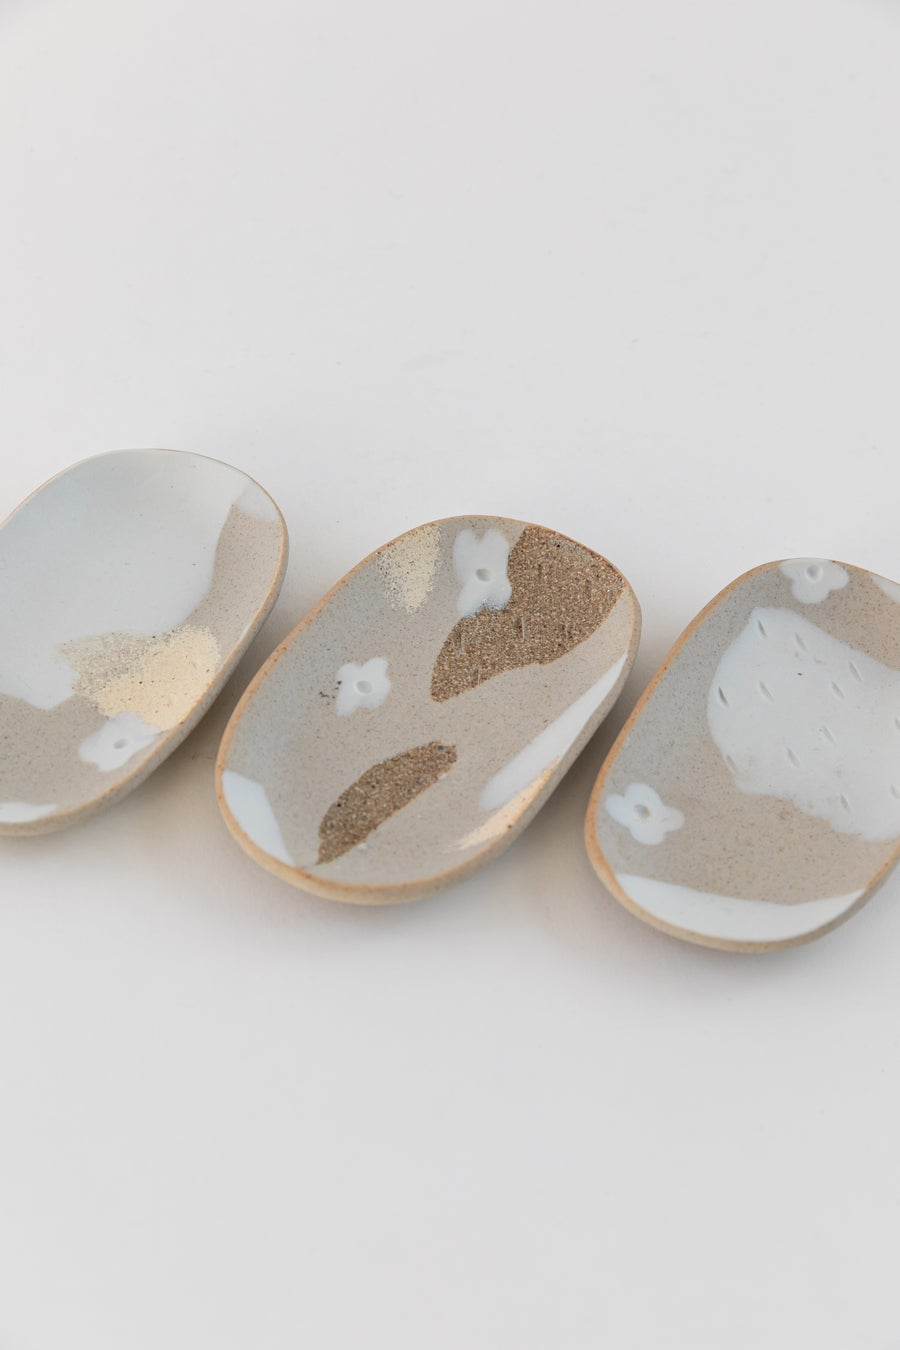 Image of Small Oval Jewelry Dish - Beige with white flowers